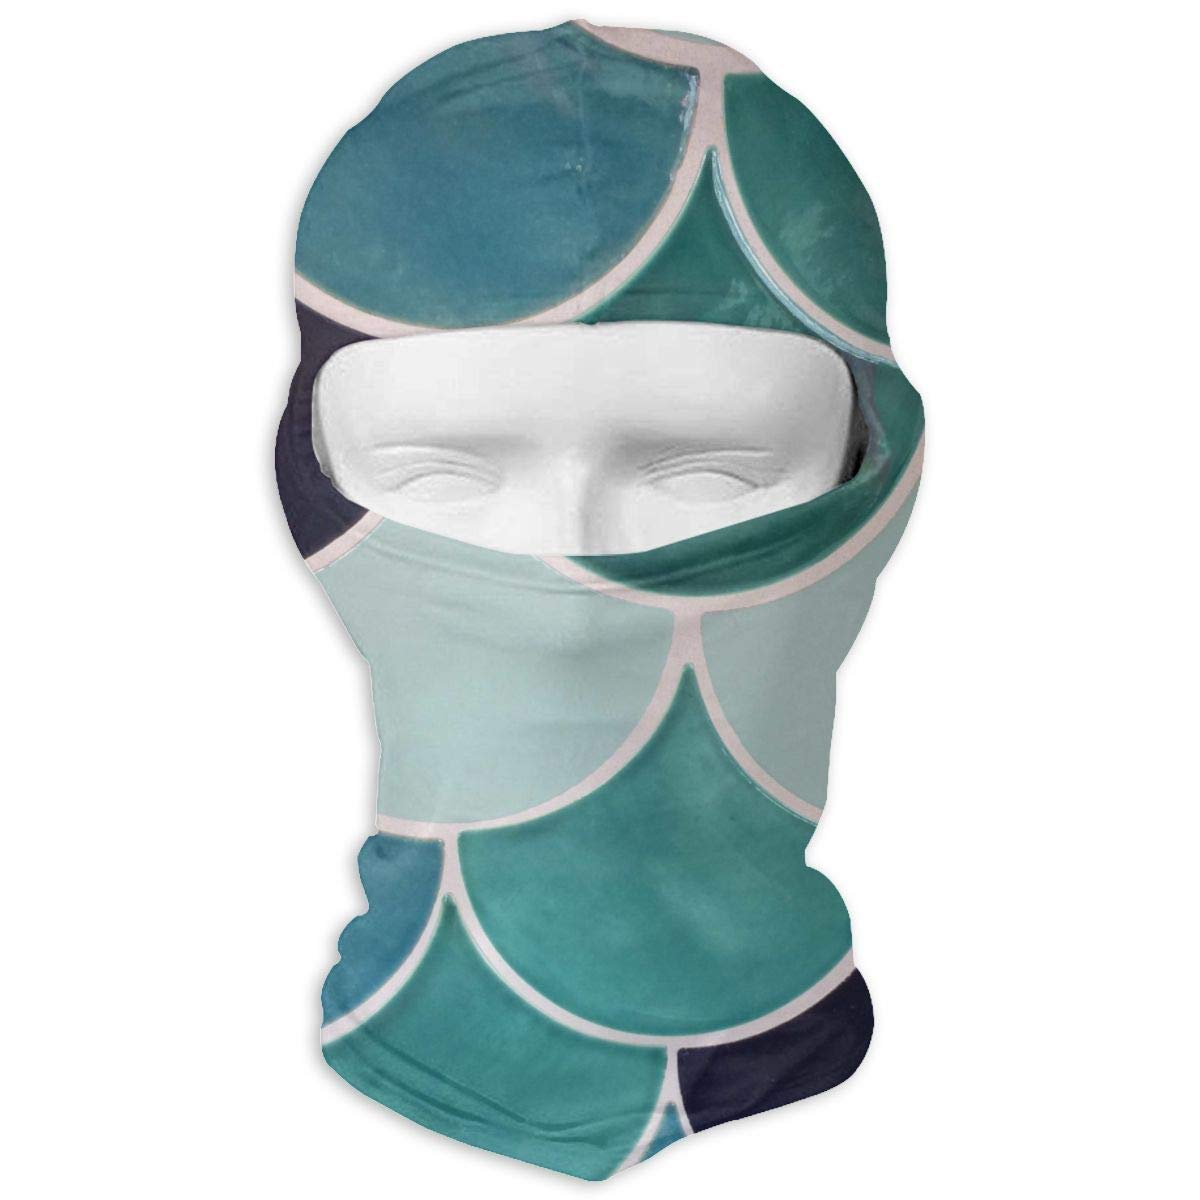 Gxdchfj Amazing Fish Scales Winter Tactical Full Face Mask Dust Protection Neck Cover Hood for Men and Women